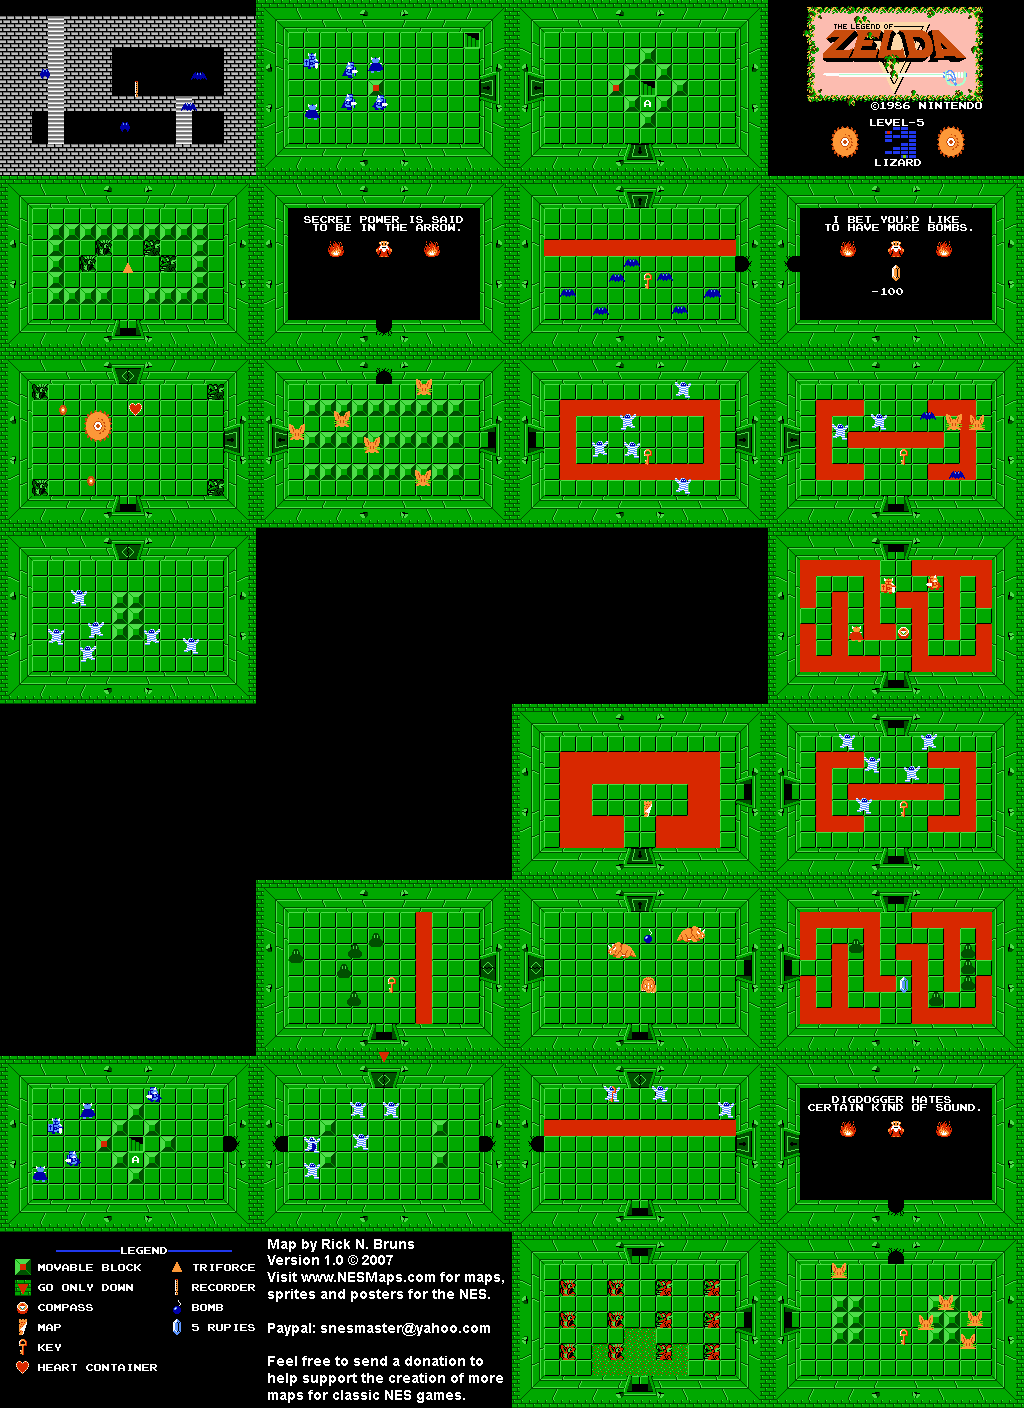 Legend Of Zelda Secrets Map : legend, zelda, secrets, Legend, Zelda, Level, Lizard, Quest